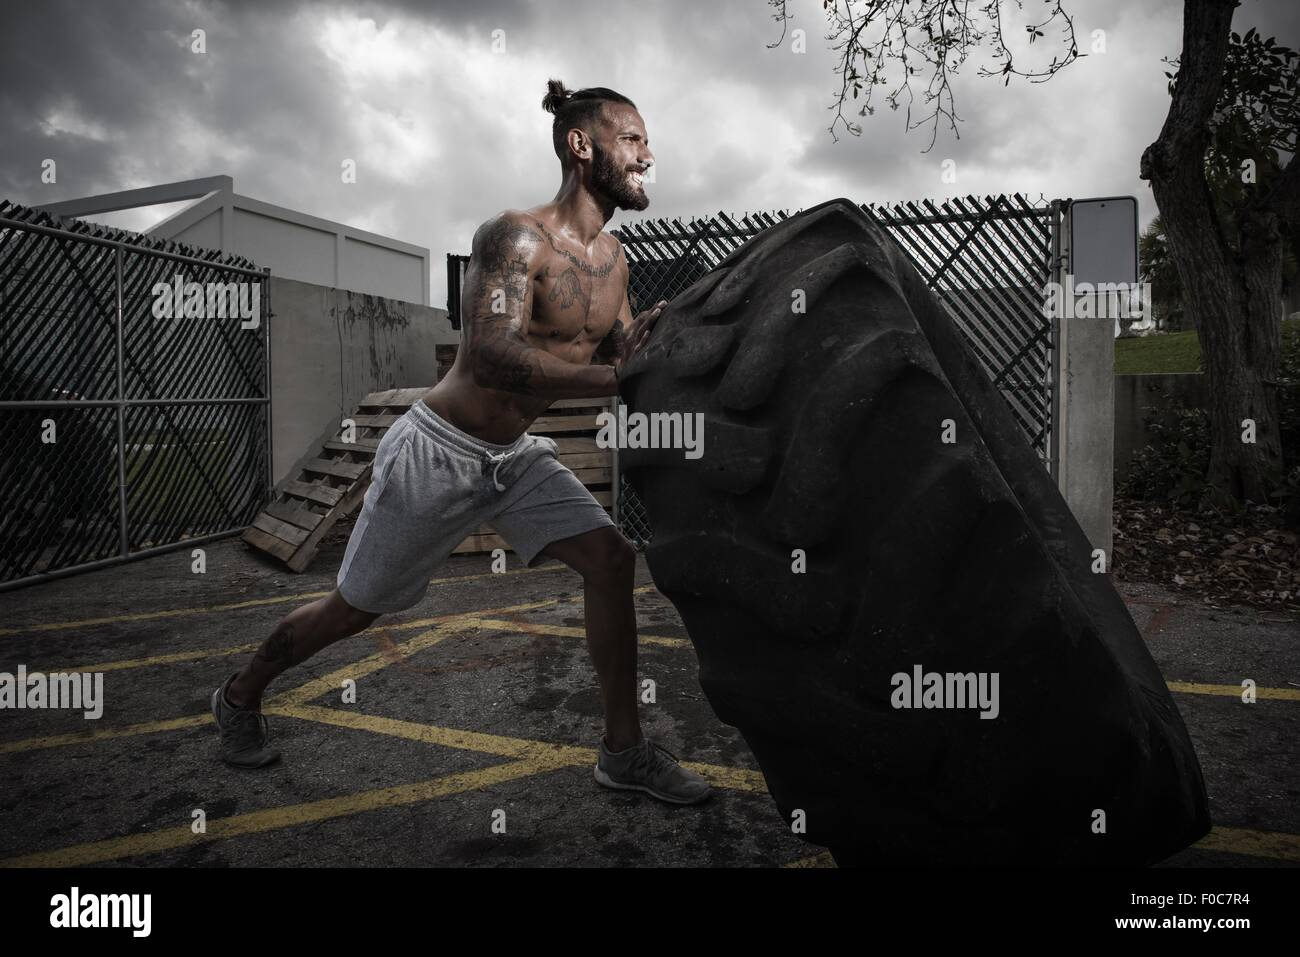 Male boxer with gritted teeth pushing truck tyre in yard - Stock Image